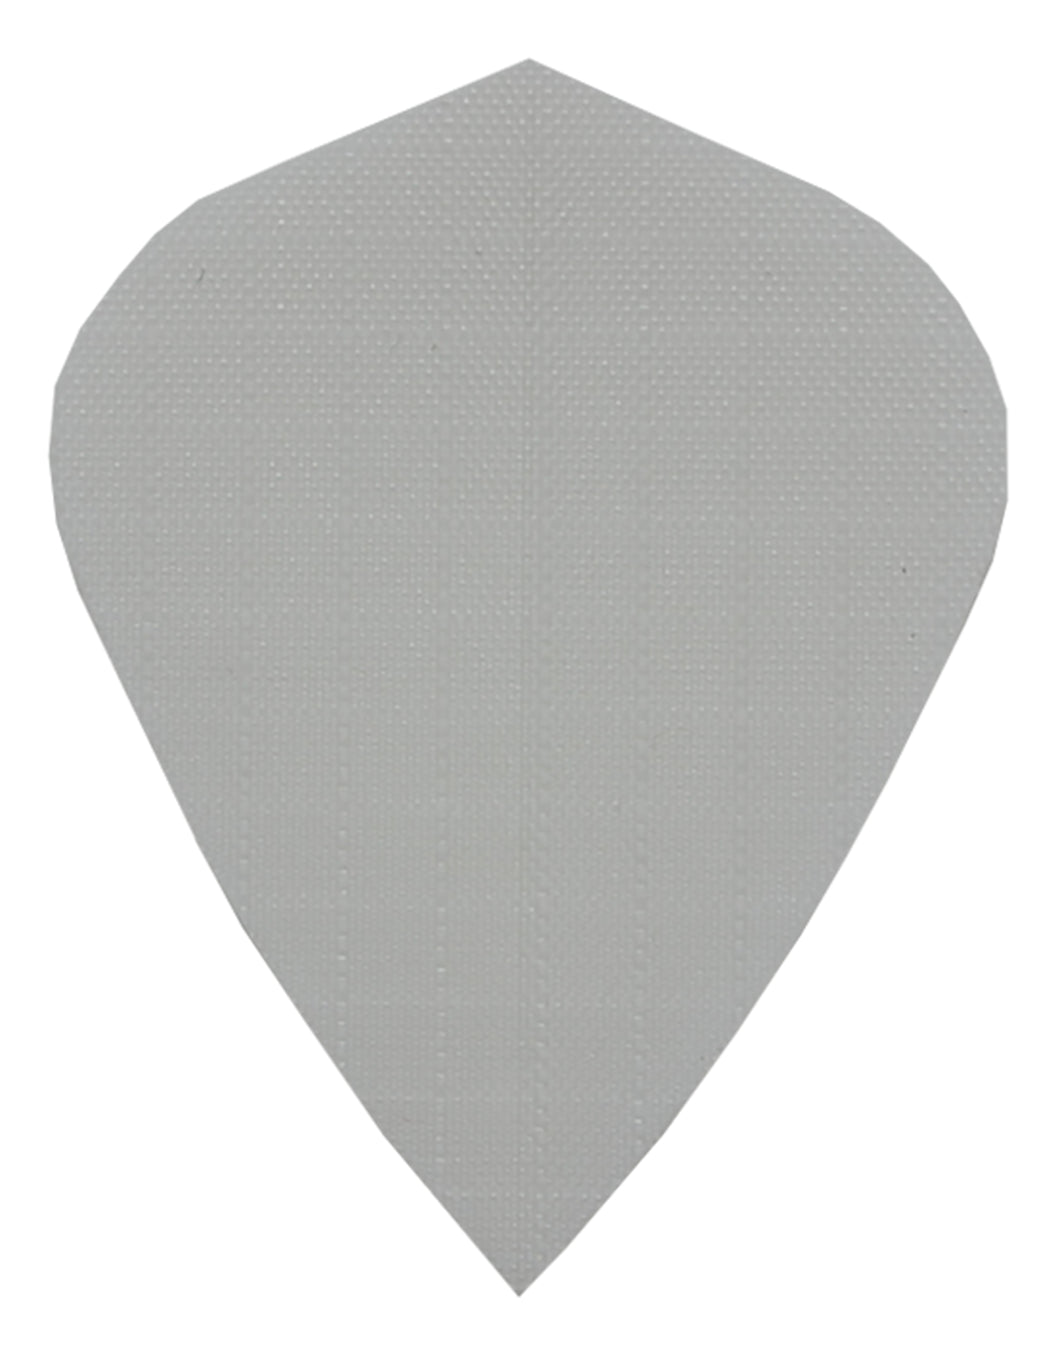 White Fabric Kite Dart Flights